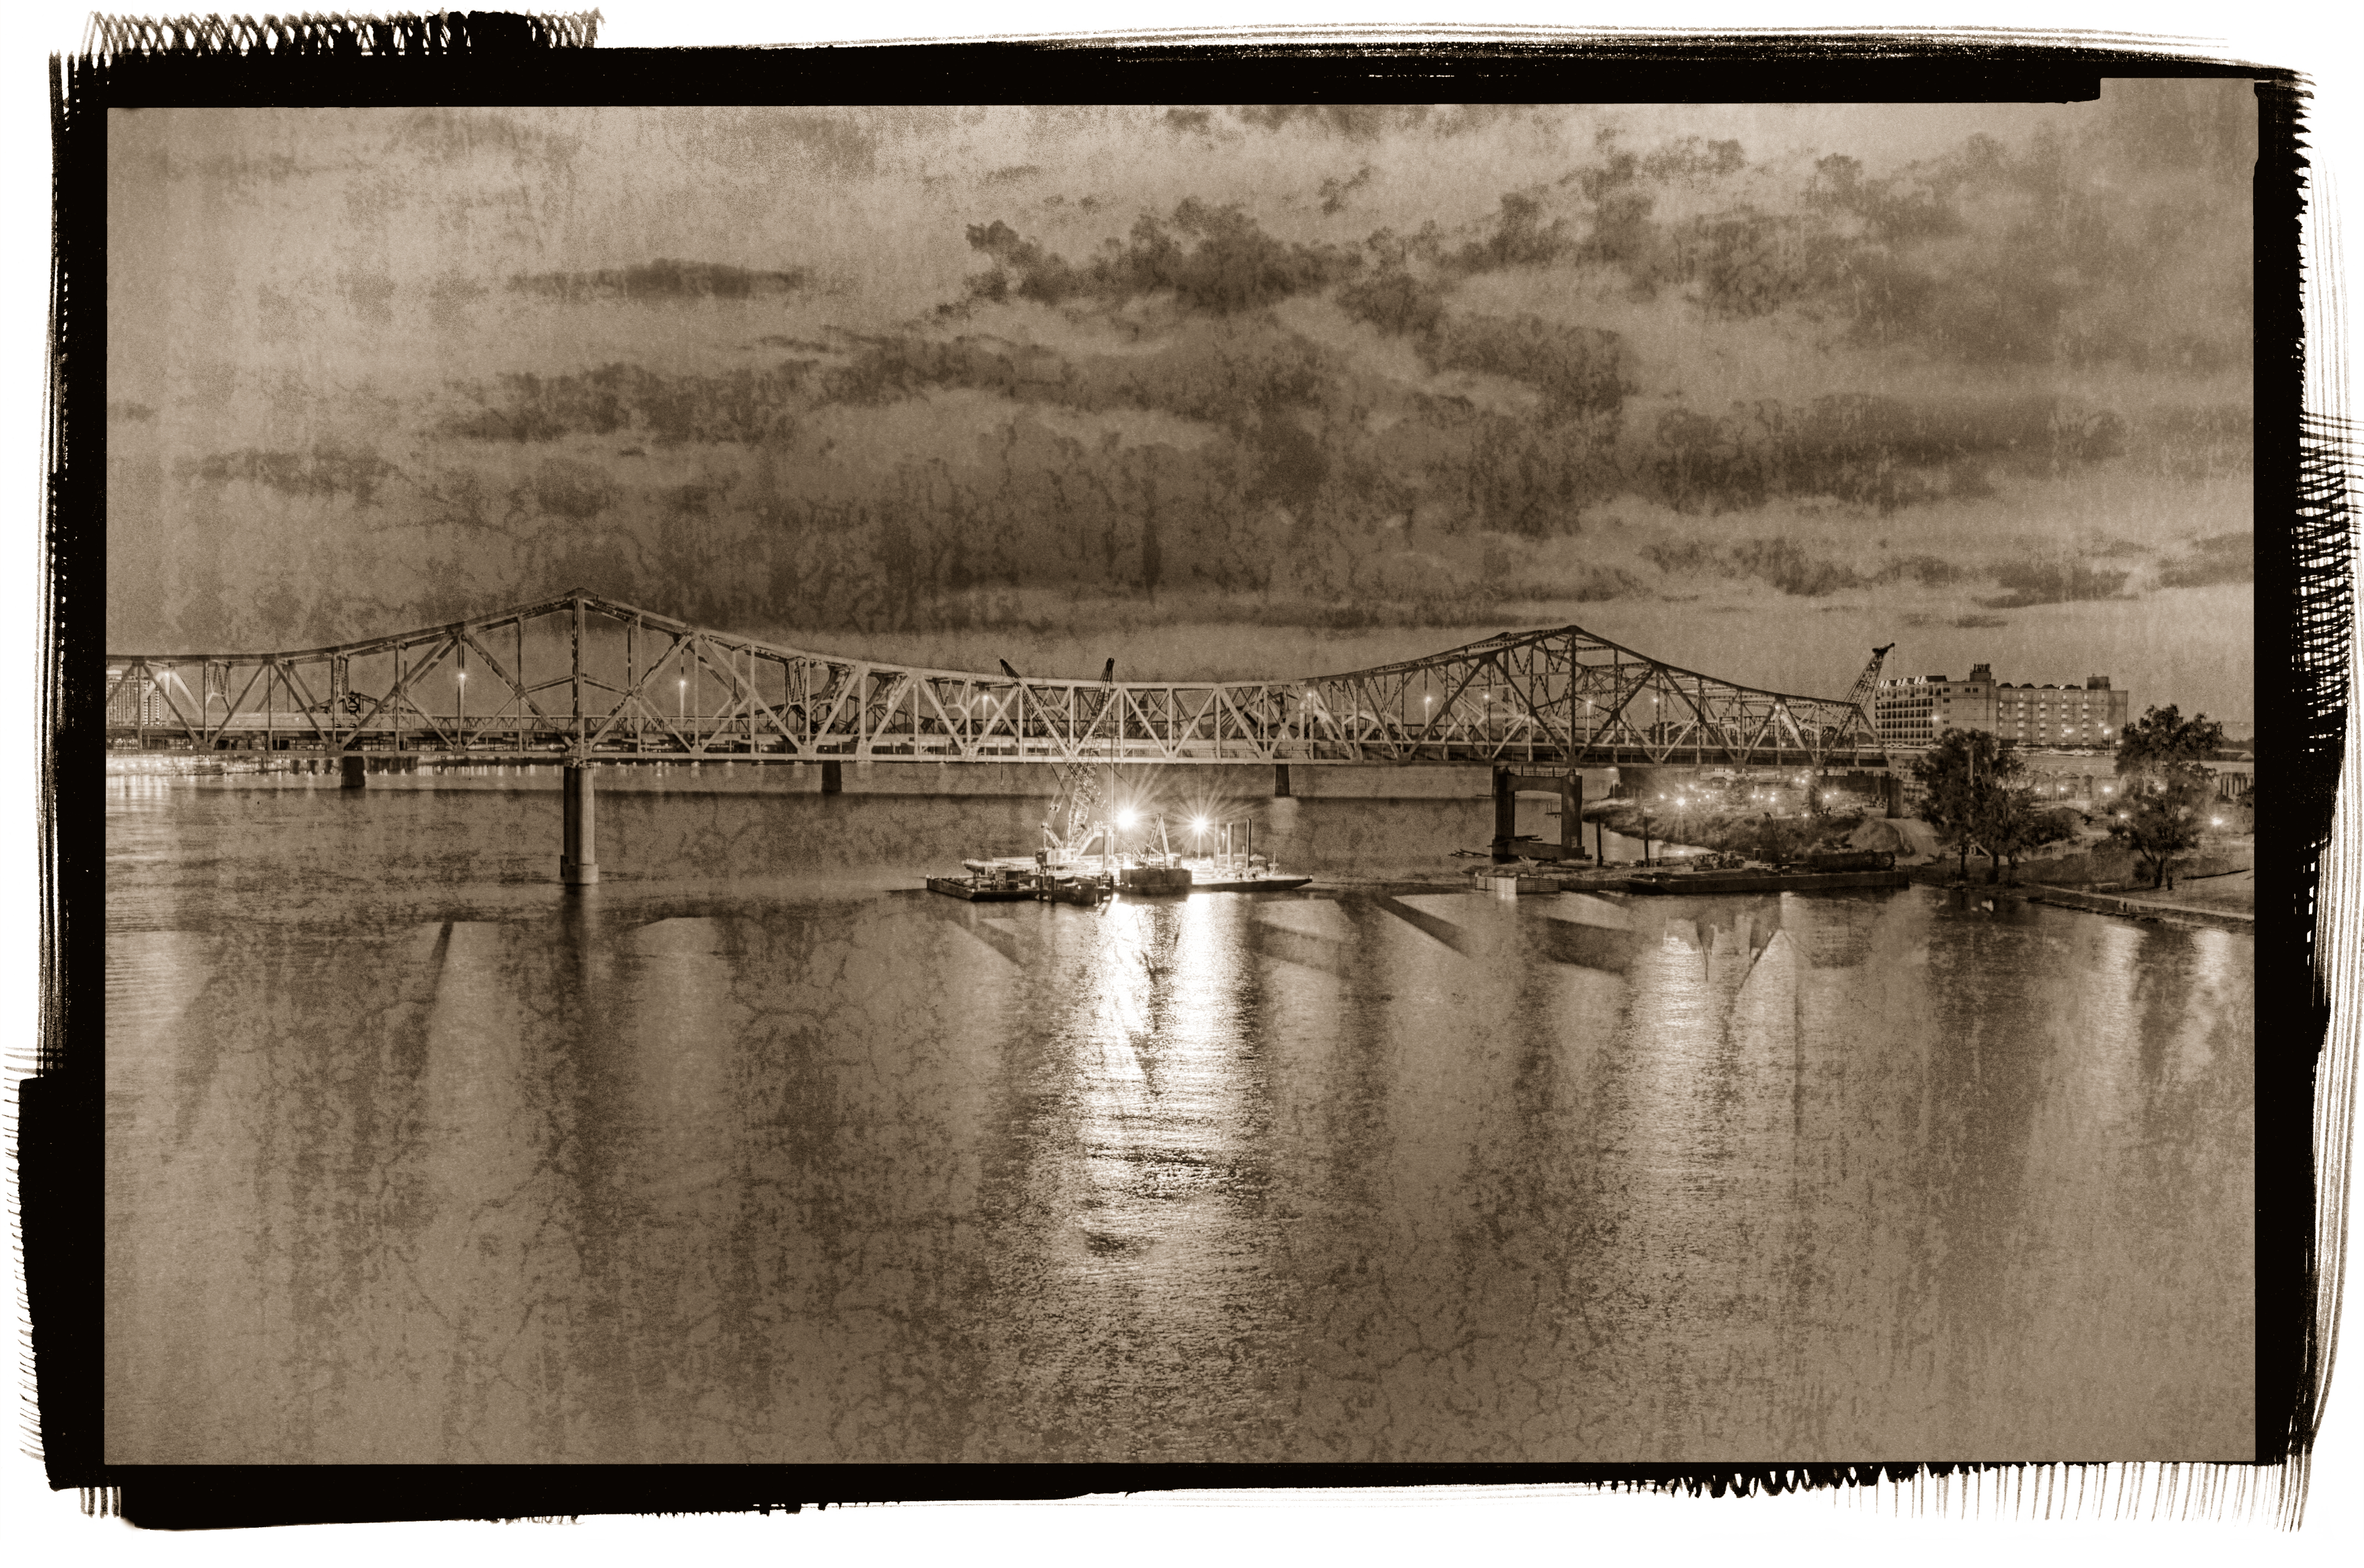 Ohio River Bridges Project Downtown Span #4